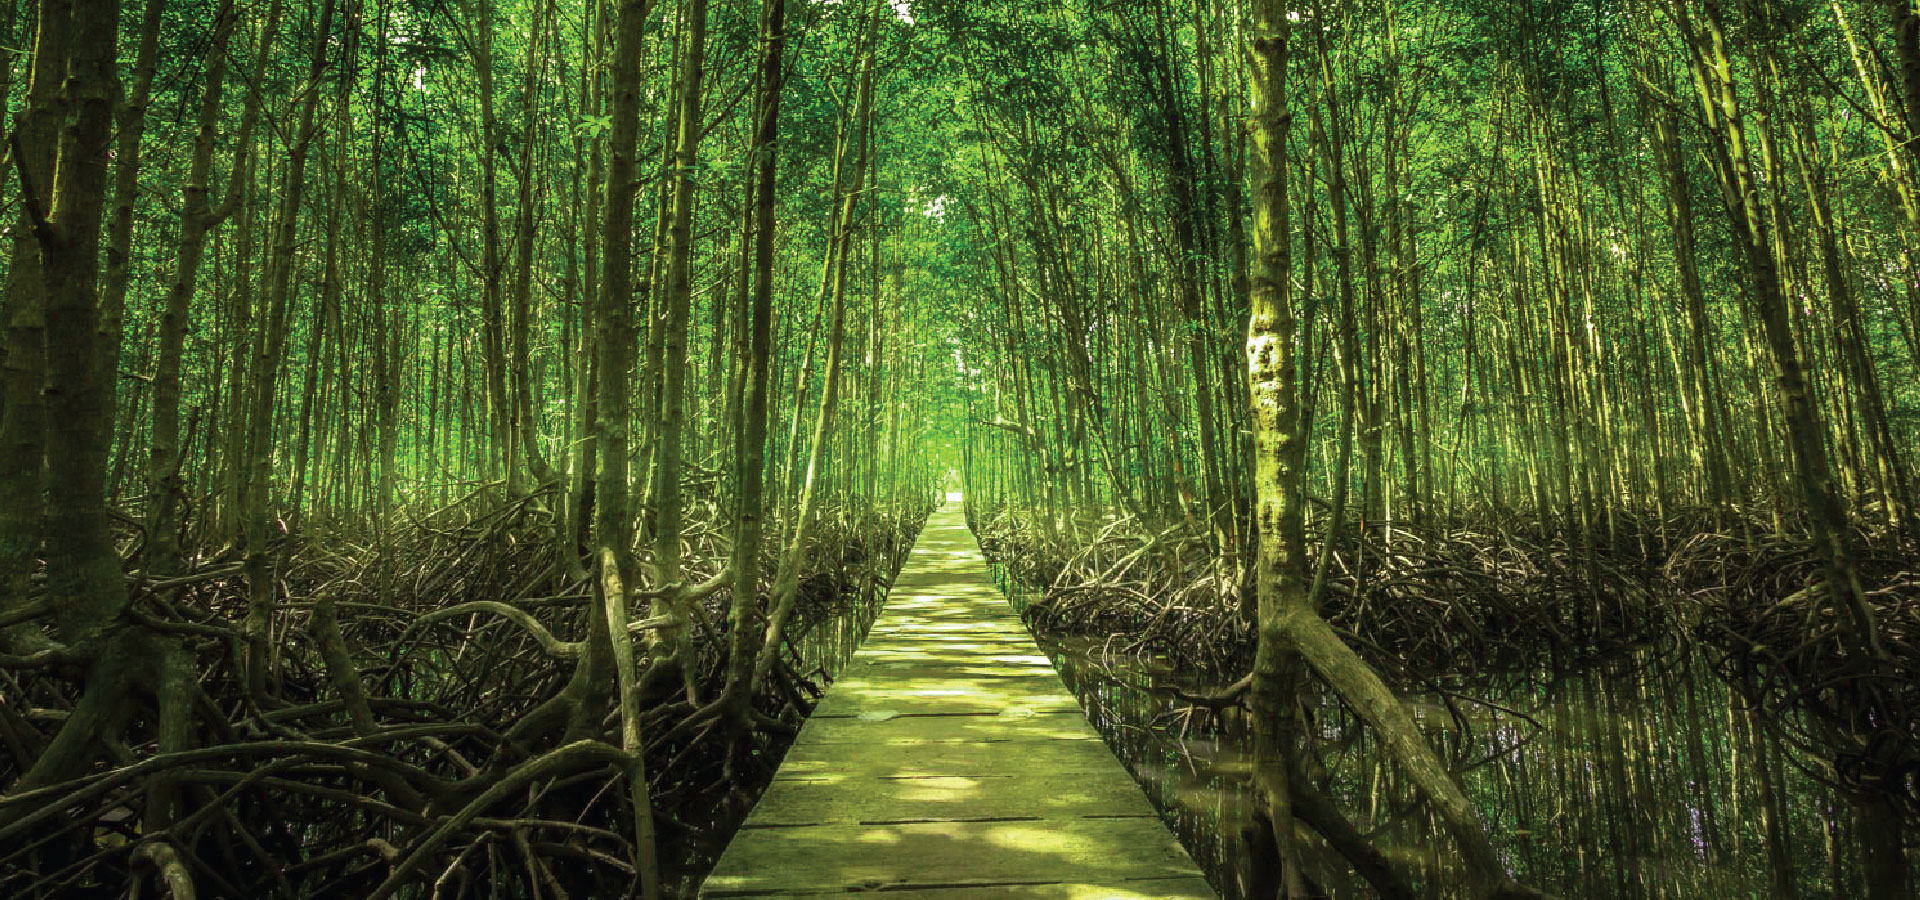 Mangrove is one of the most biologically diverse forests